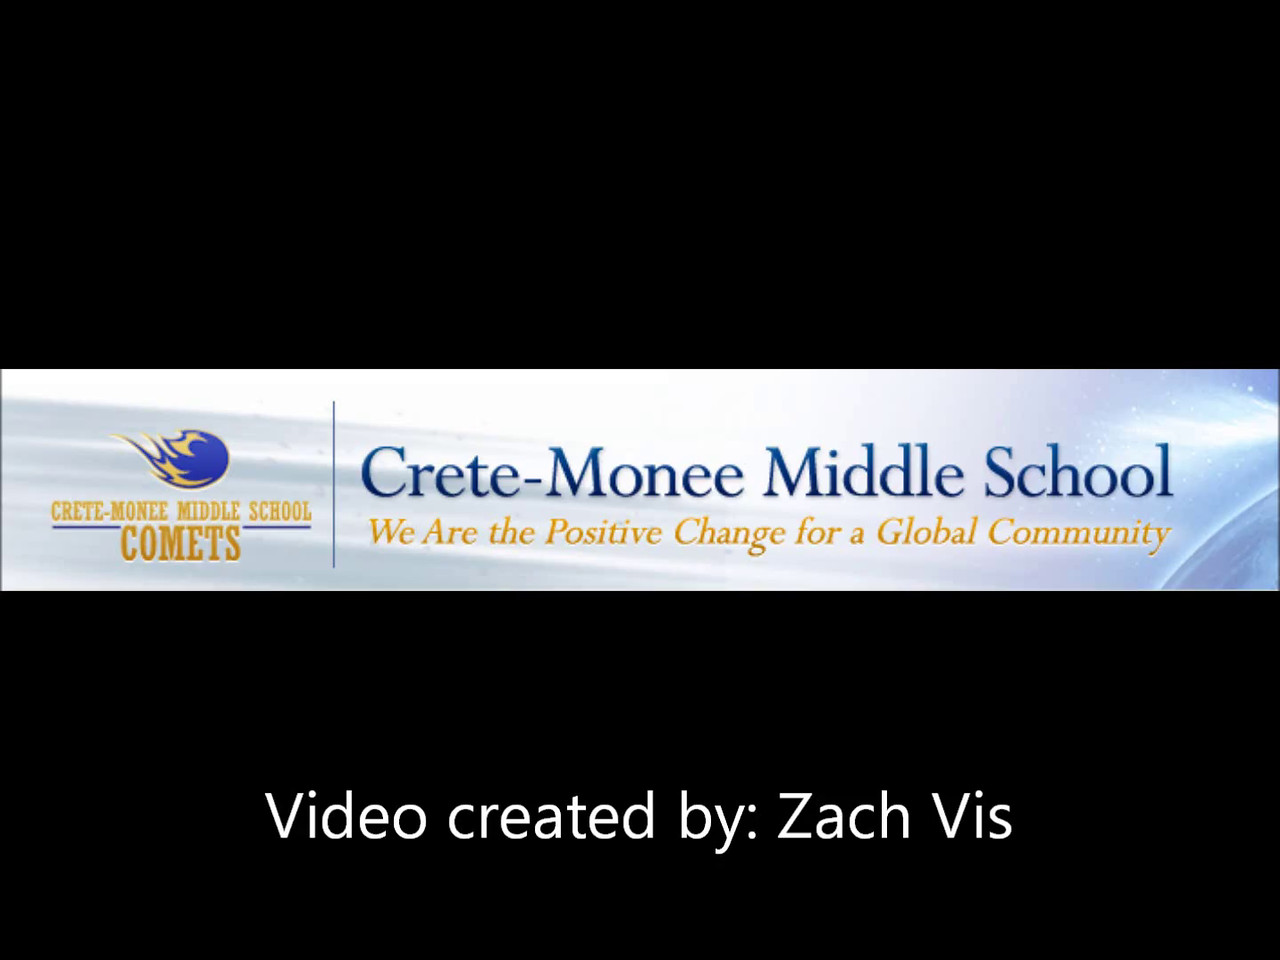 CMMS Vision & Mission Statement Video